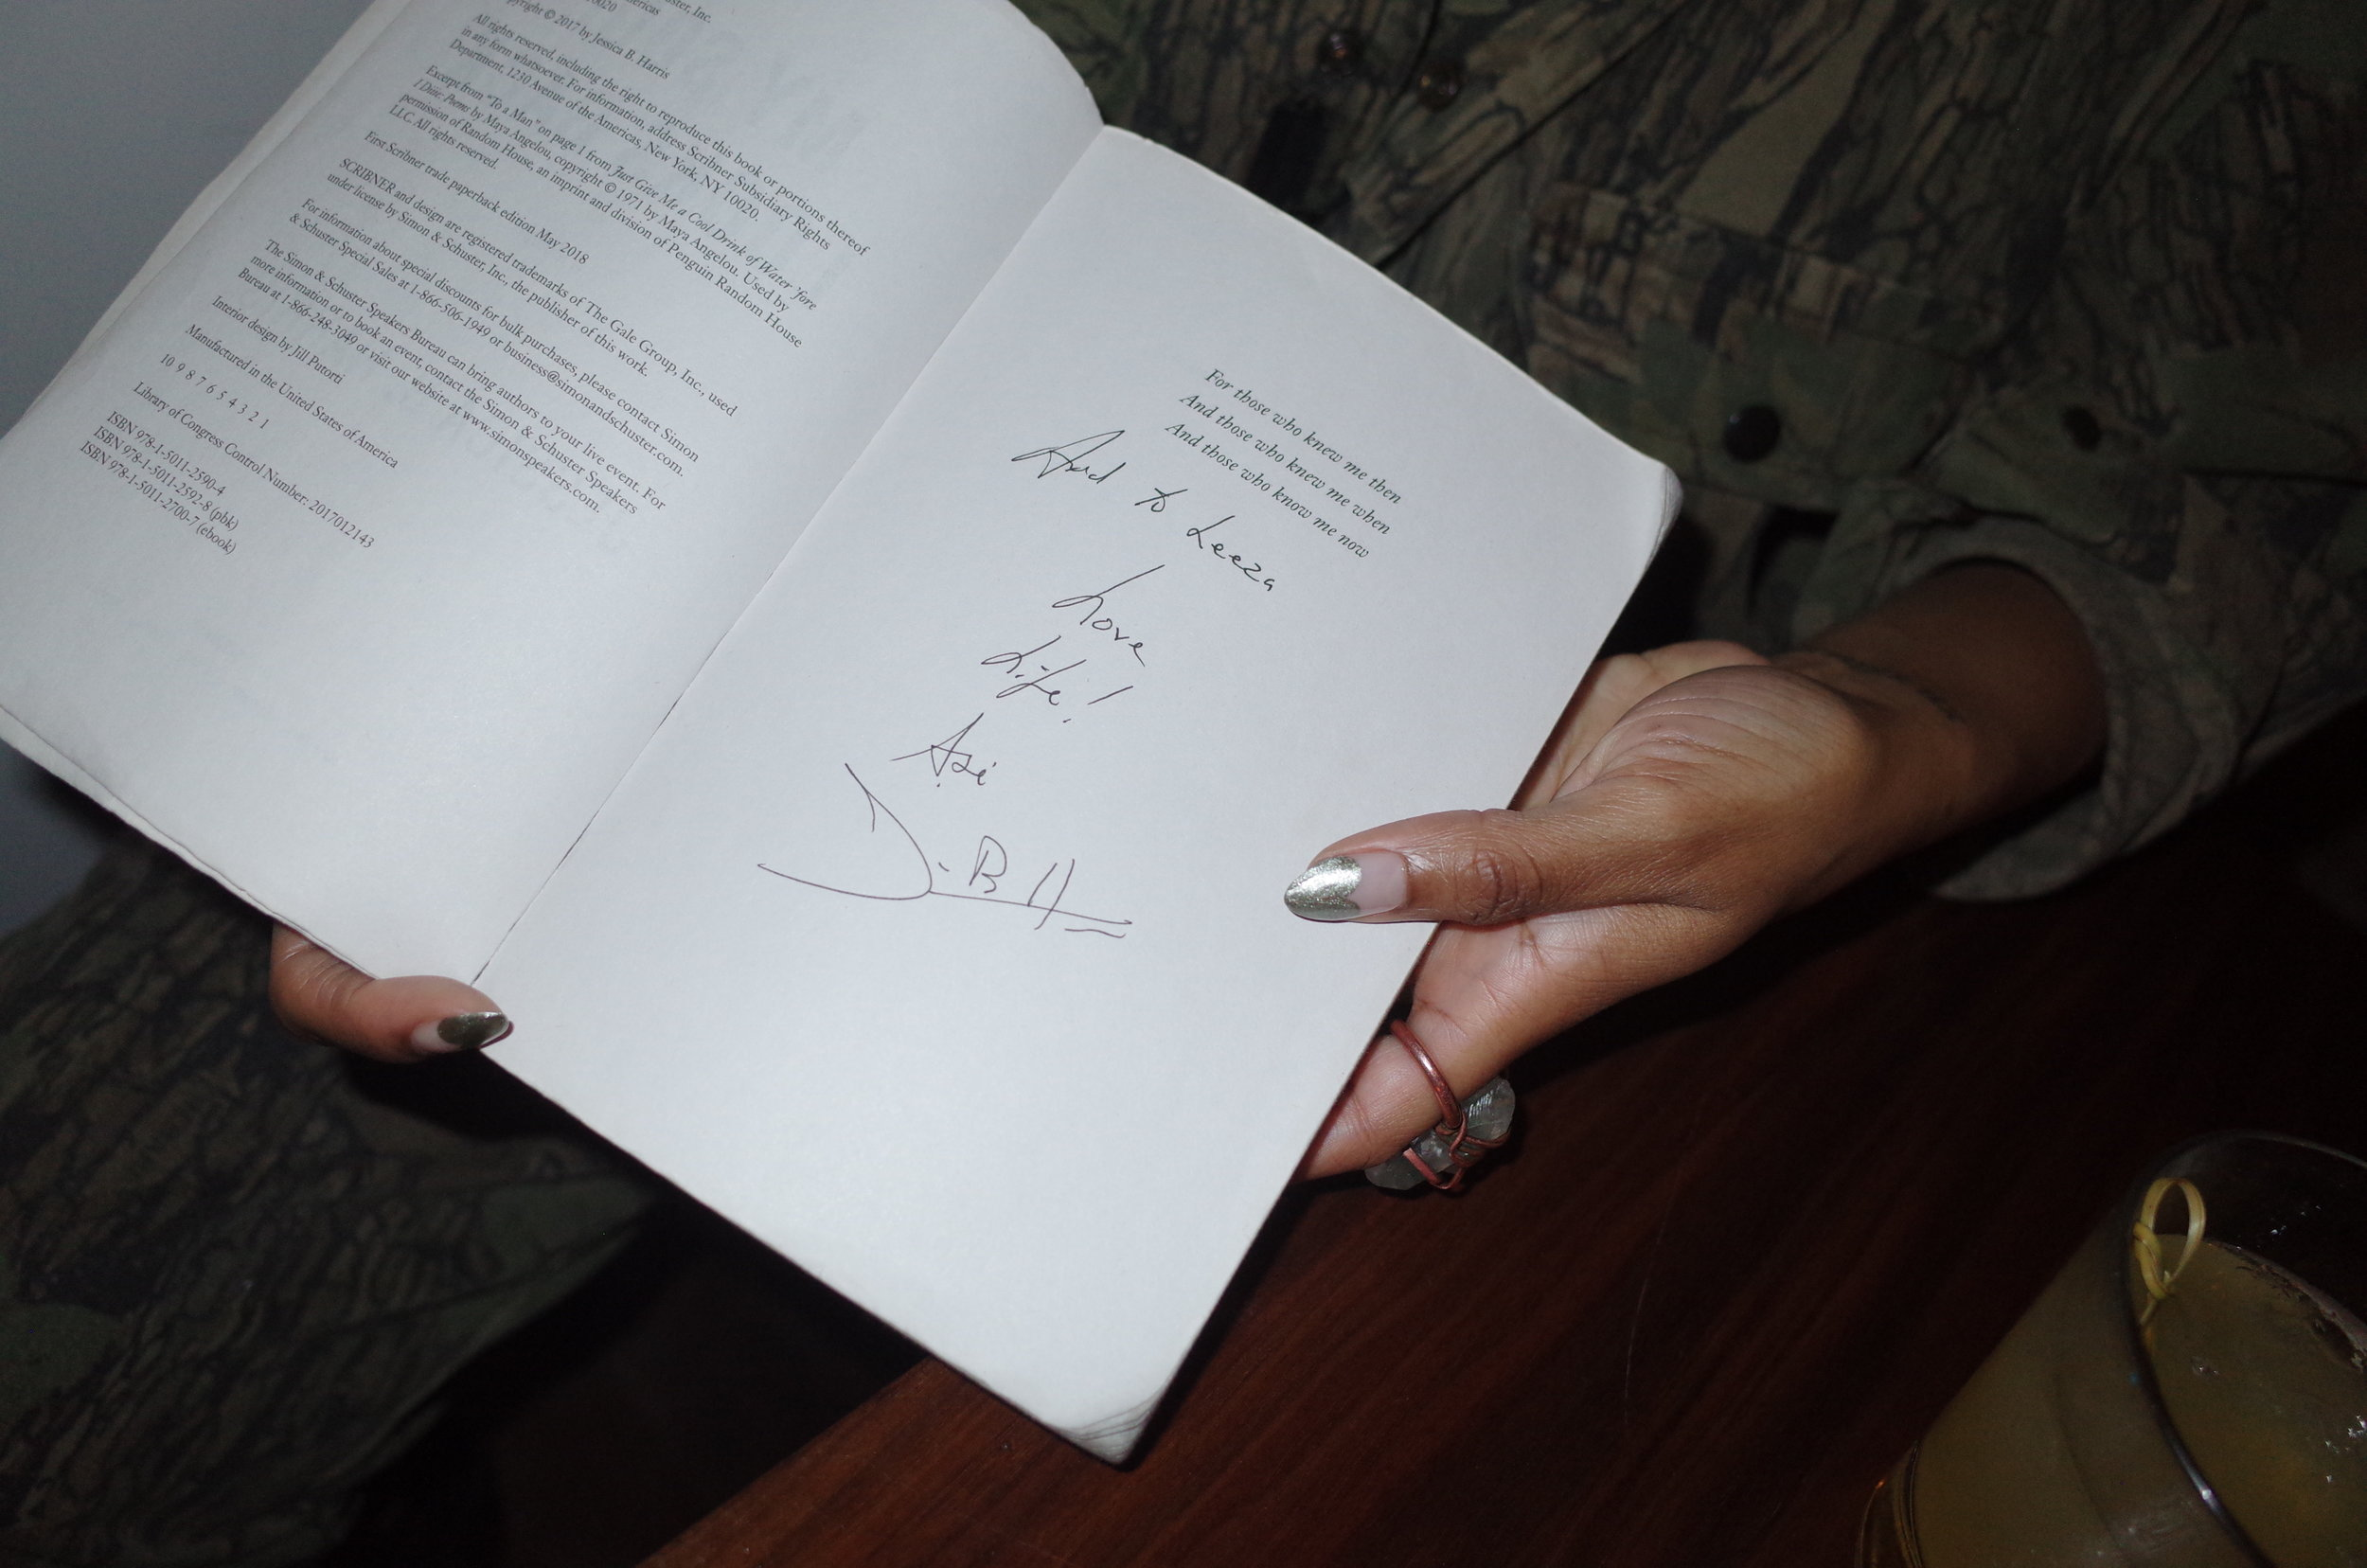 Signed copy of the book My Soul Looks Back, currently inspiring Joneé